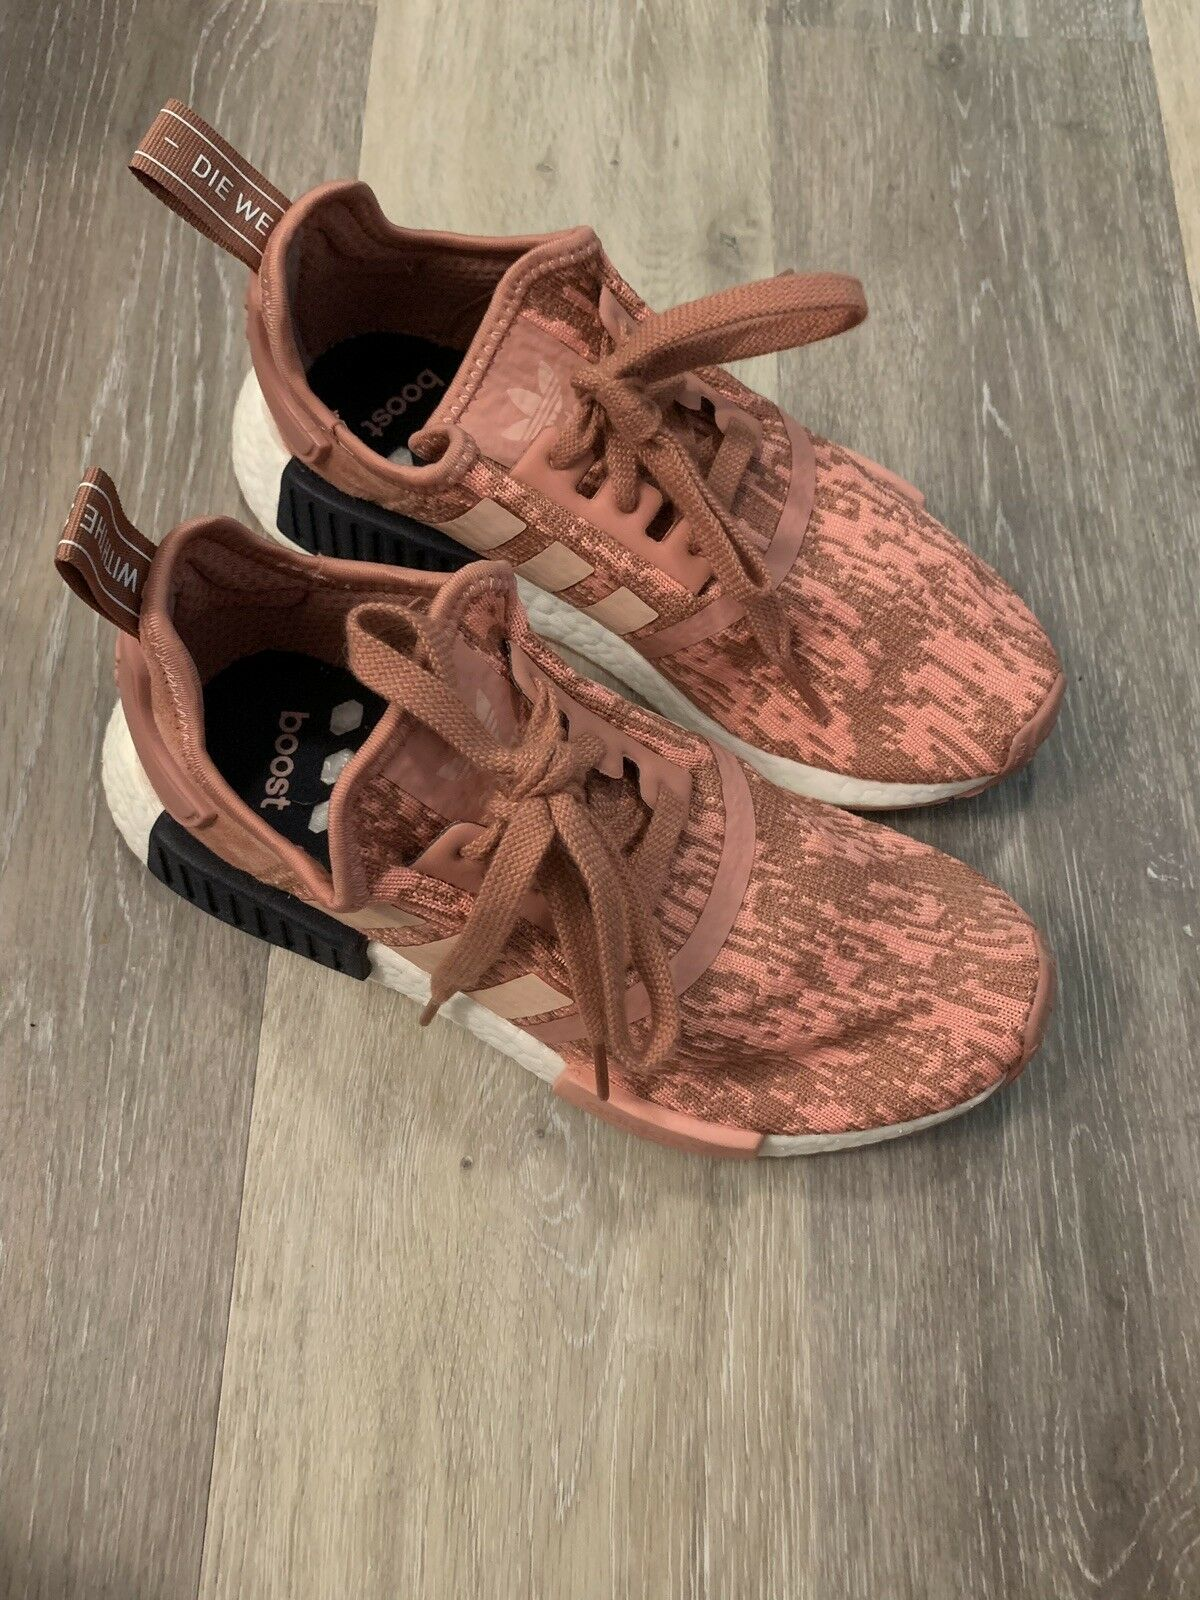 Adidas NMD NMD NMD R1 Pink Primeknit Size 6 41248d